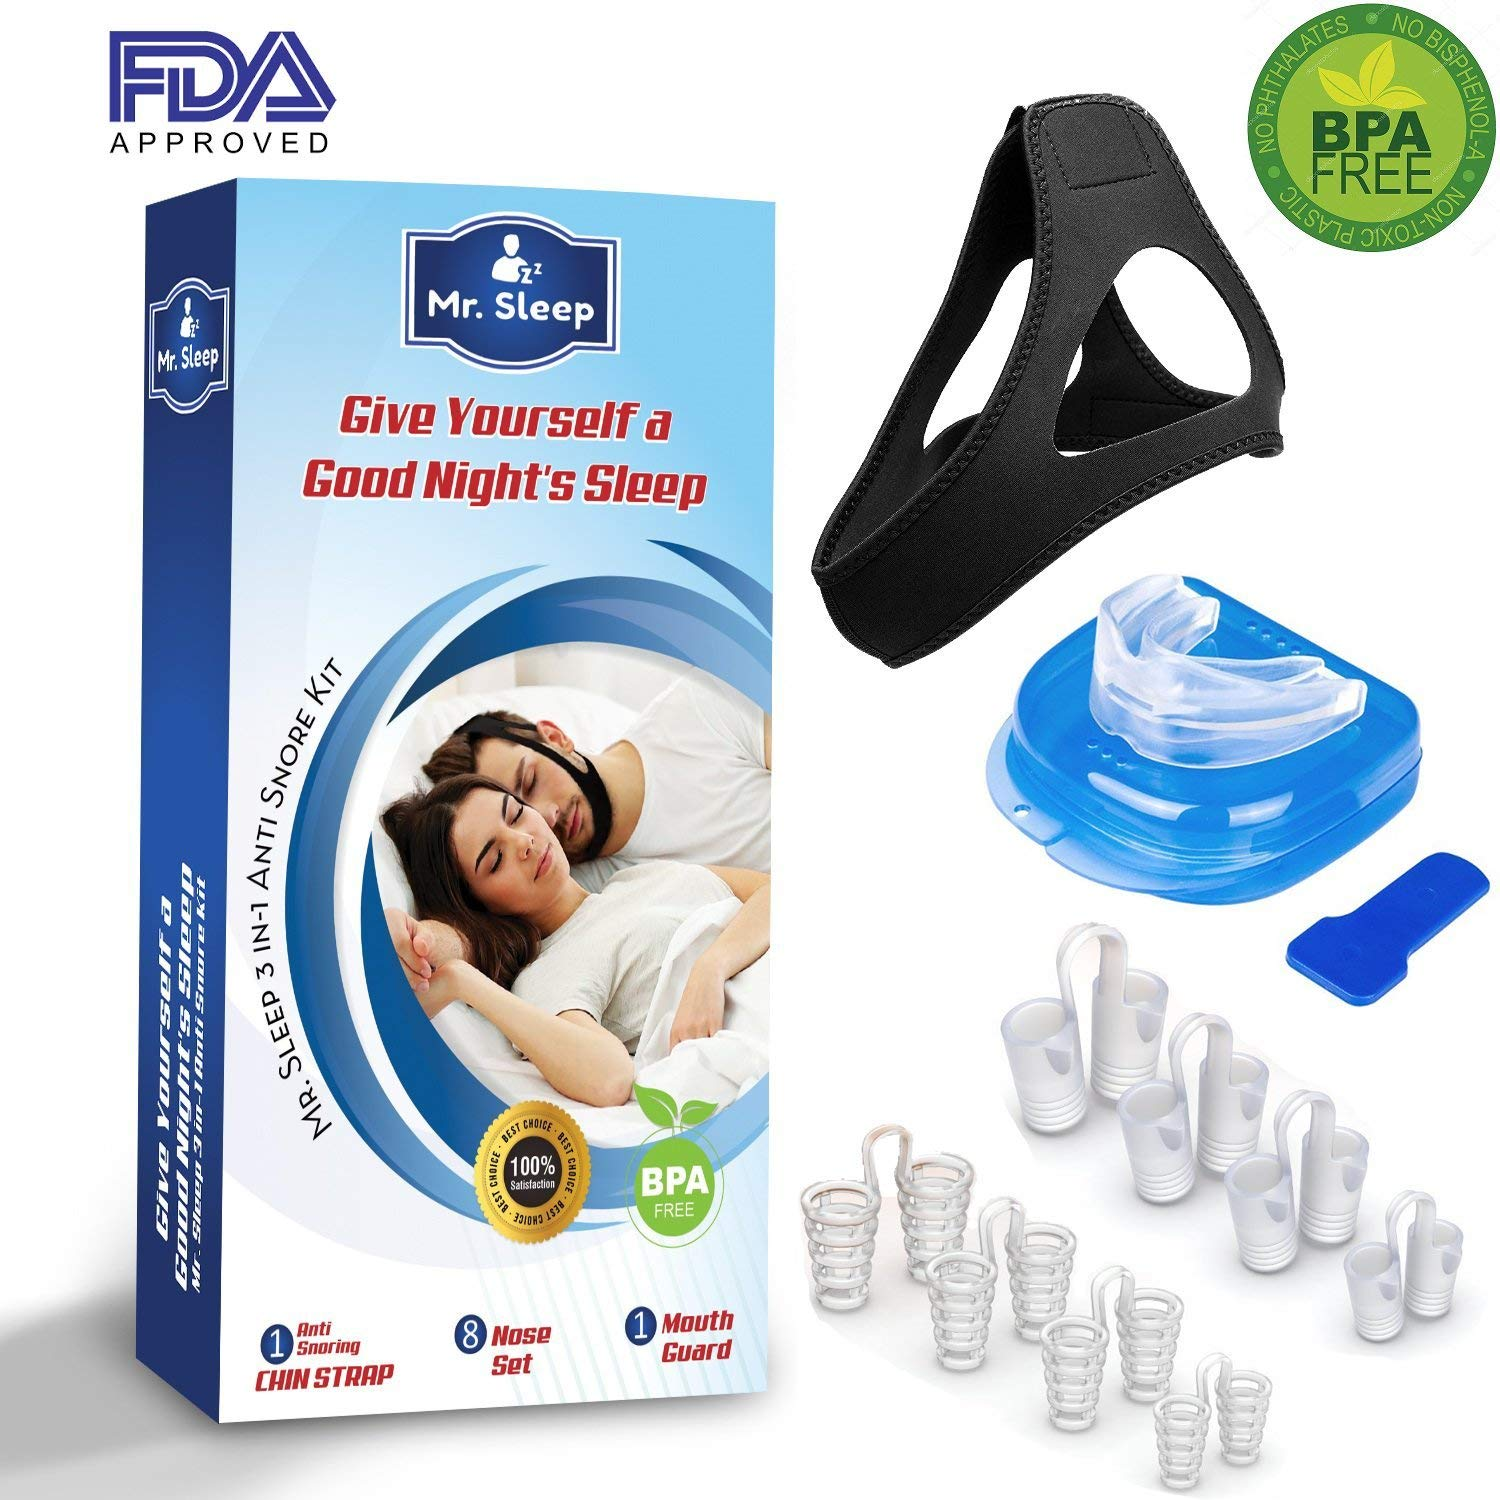 Snoring Solution,3 in 1 Anti Snoring Devices,Nose Vents,Nasal Dilators,Anti Snoring Mouthpiece,Snoring Mouth Guard,Anti Snoring Chin Strap Included,Snore Stopper-Designed by Mr.Sleep